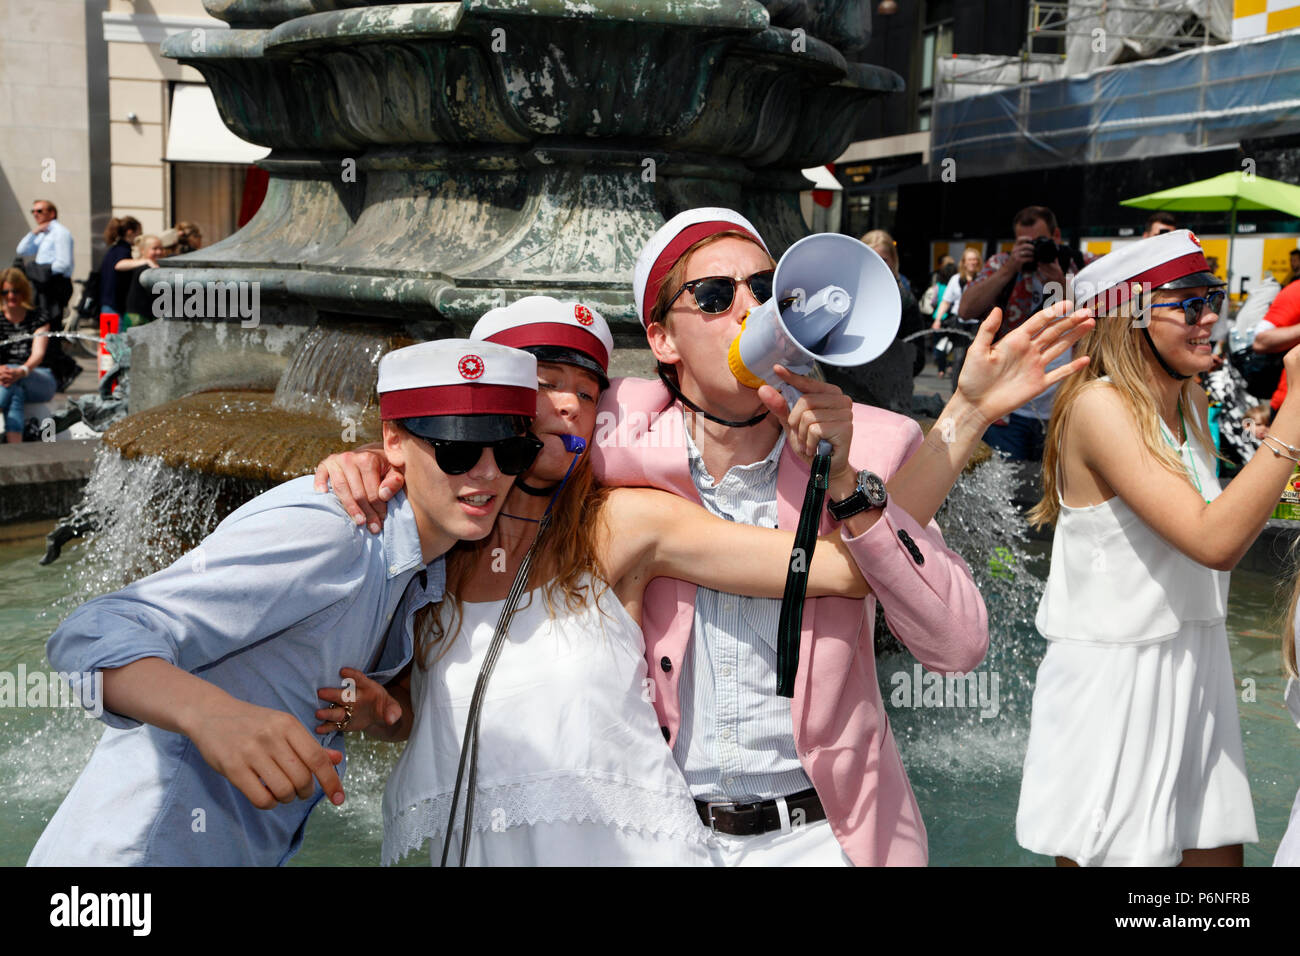 Danish students celebrate their high school graduation with the traditional dance round and plunge into the Stork Fountain on Stroeget in Copenhagen. Stock Photo